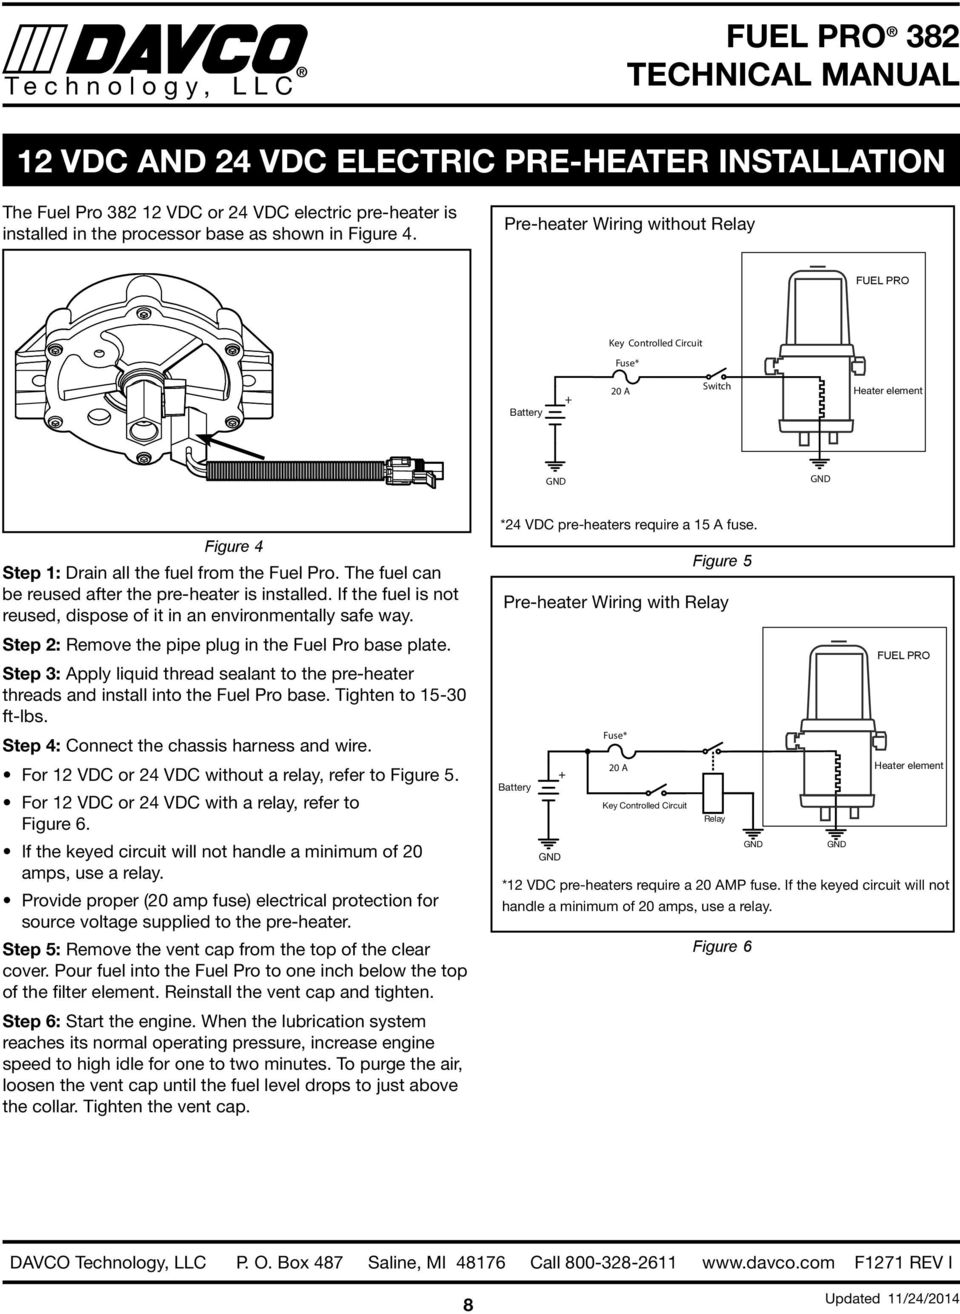 medium resolution of the fuel can be reused after the pre heater is installed if the fuel